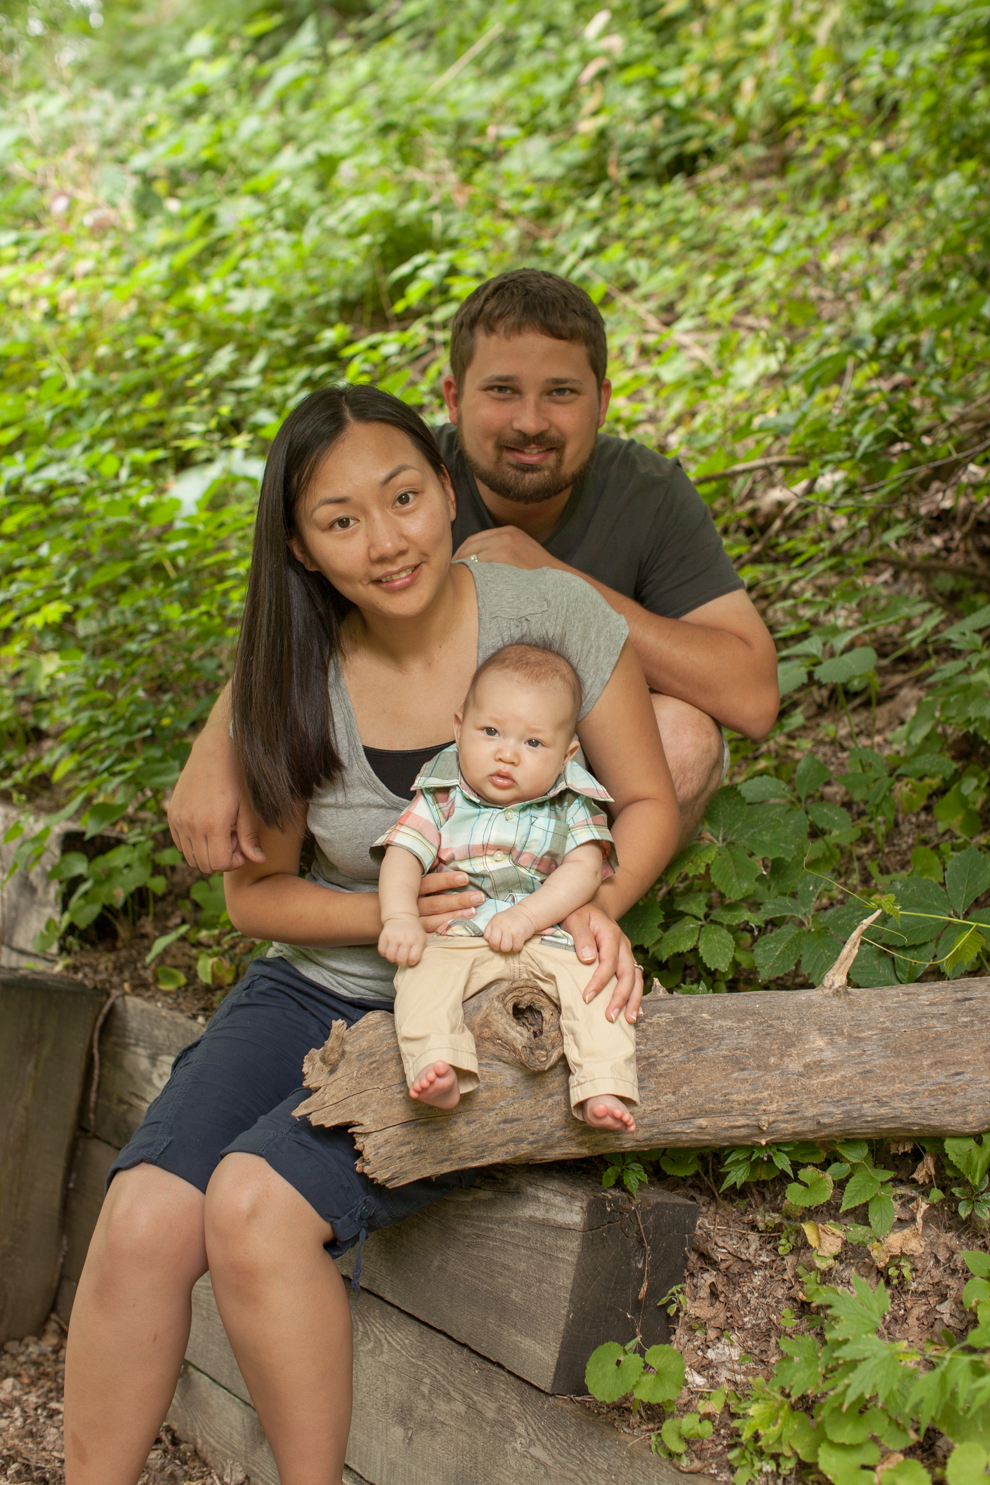 072614_Lodin_Family_3mth_485